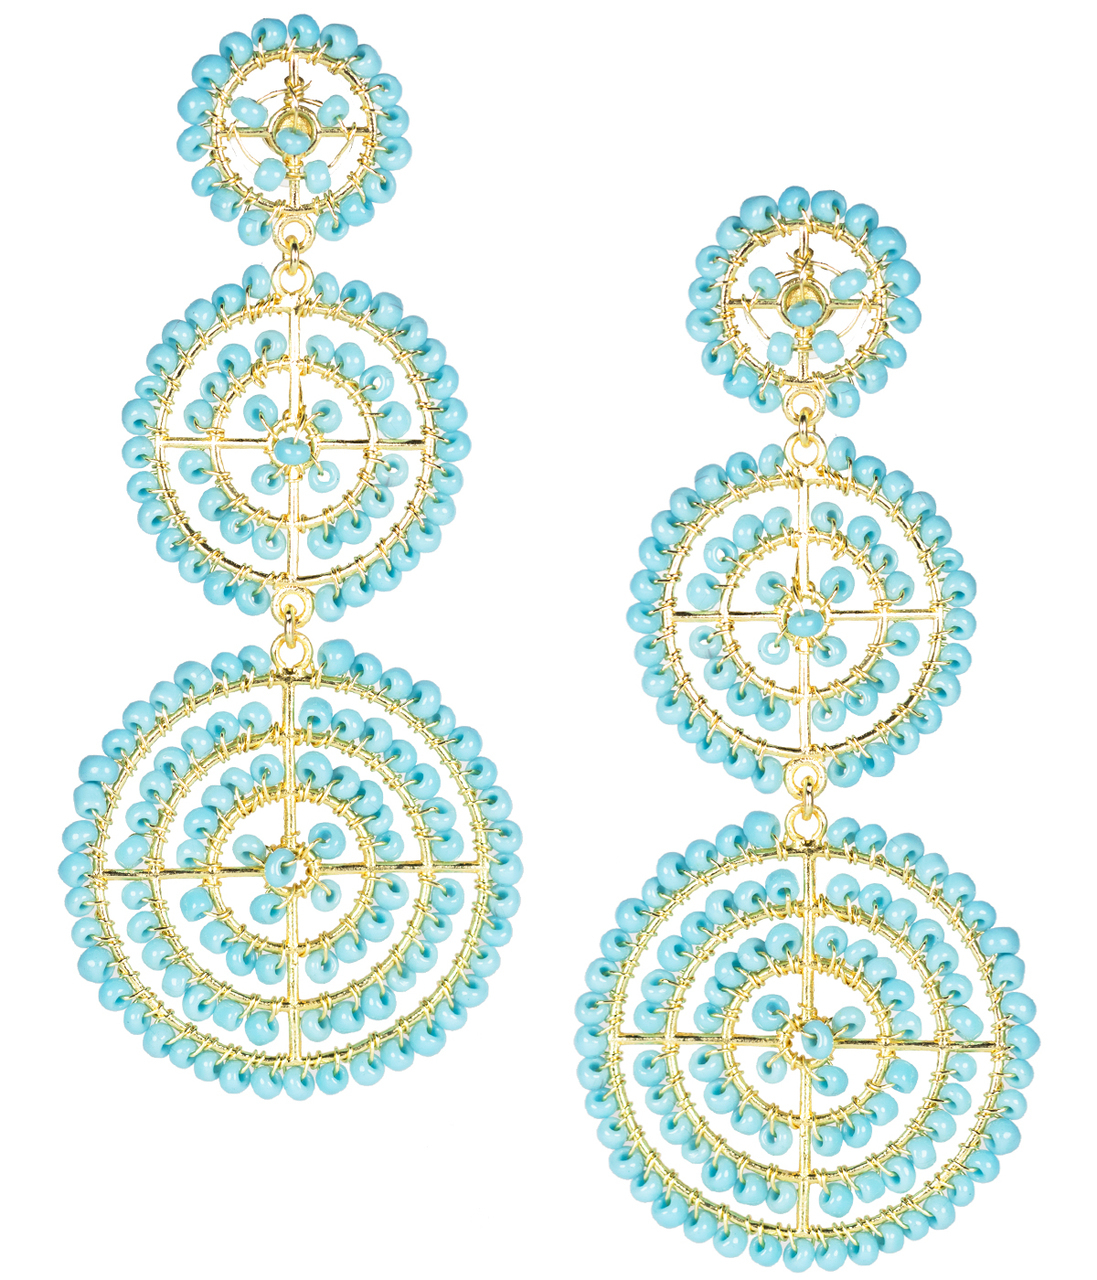 Greta Turquoise Earrings